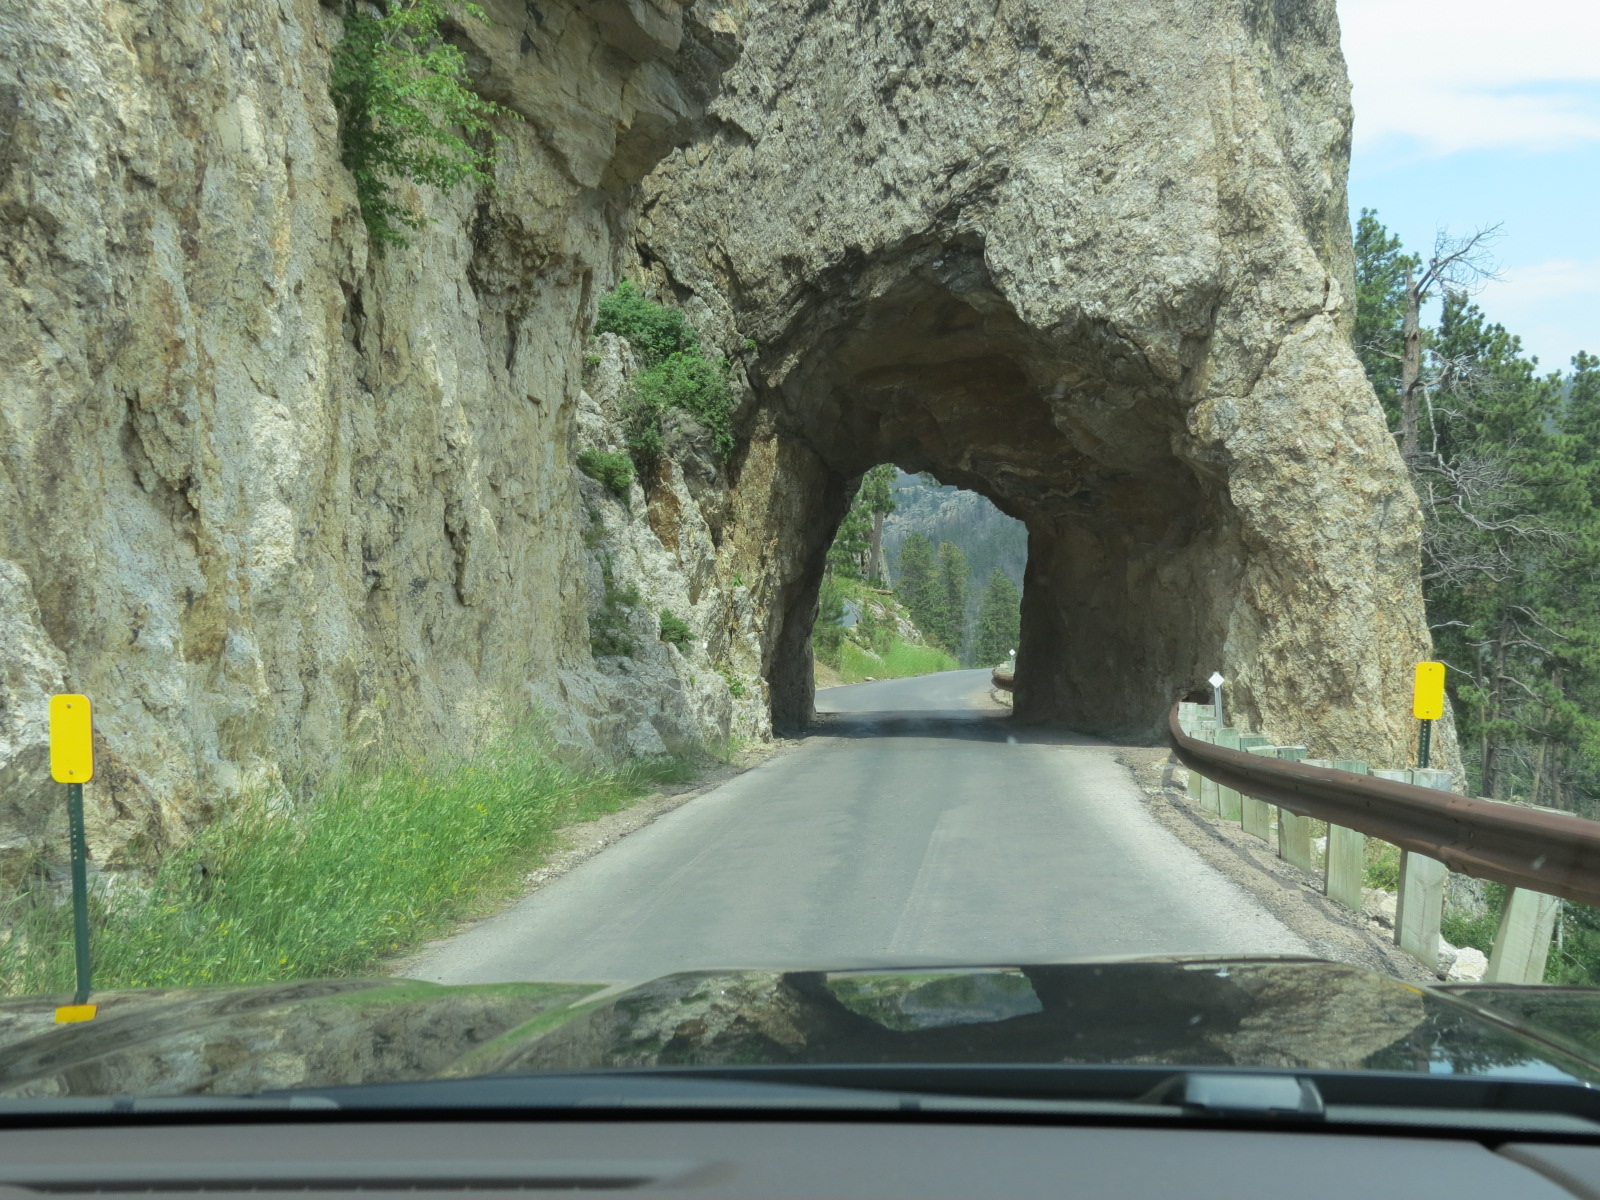 Driving thru tunnel in Custer State Park, South Dakota